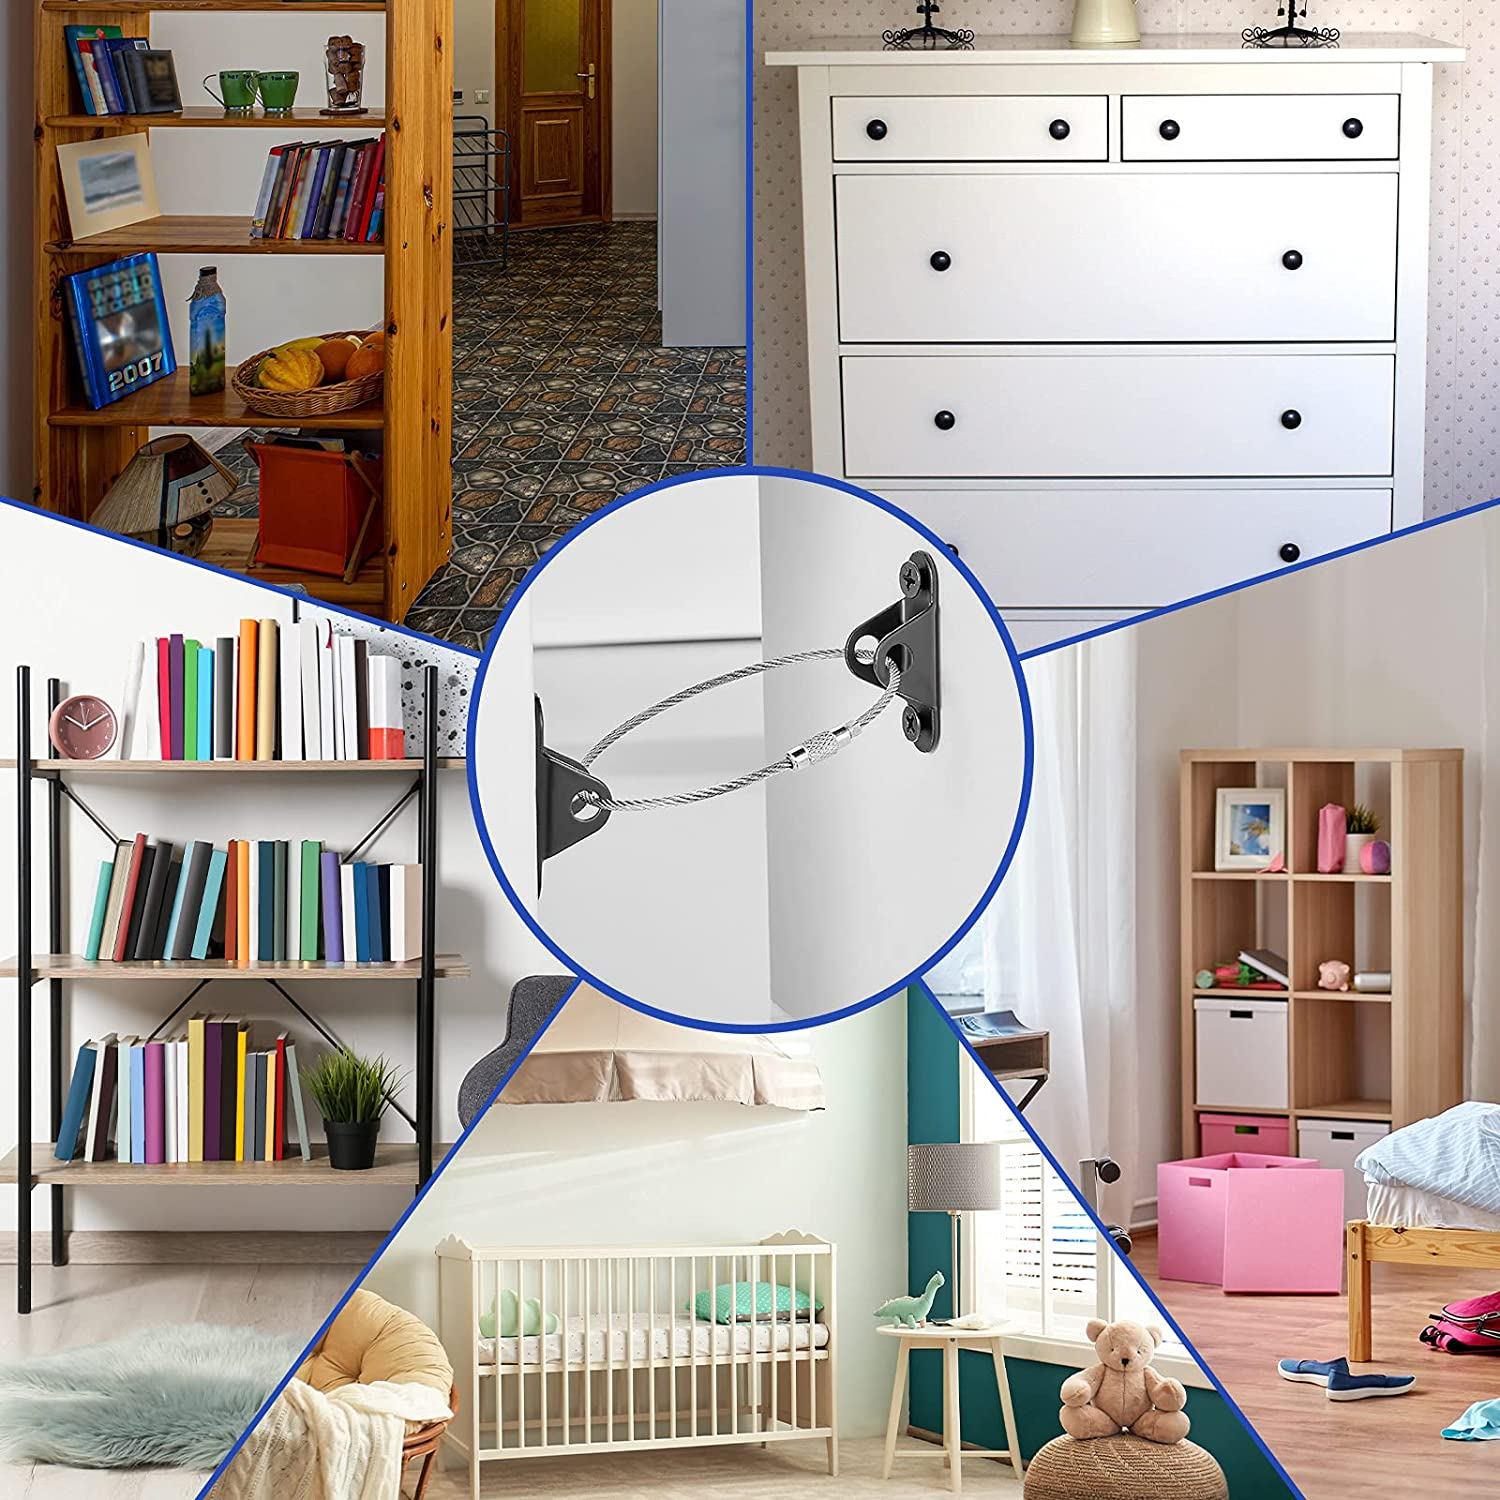 12 Pieces Furniture Anchors,Furniture Wall Straps for Baby Proofing,Earthquake Resistant Metal Straps Anti Tip Children Safety Device,Furniture Secure Straps for Dresser Cabinet Bookshelf (Black)